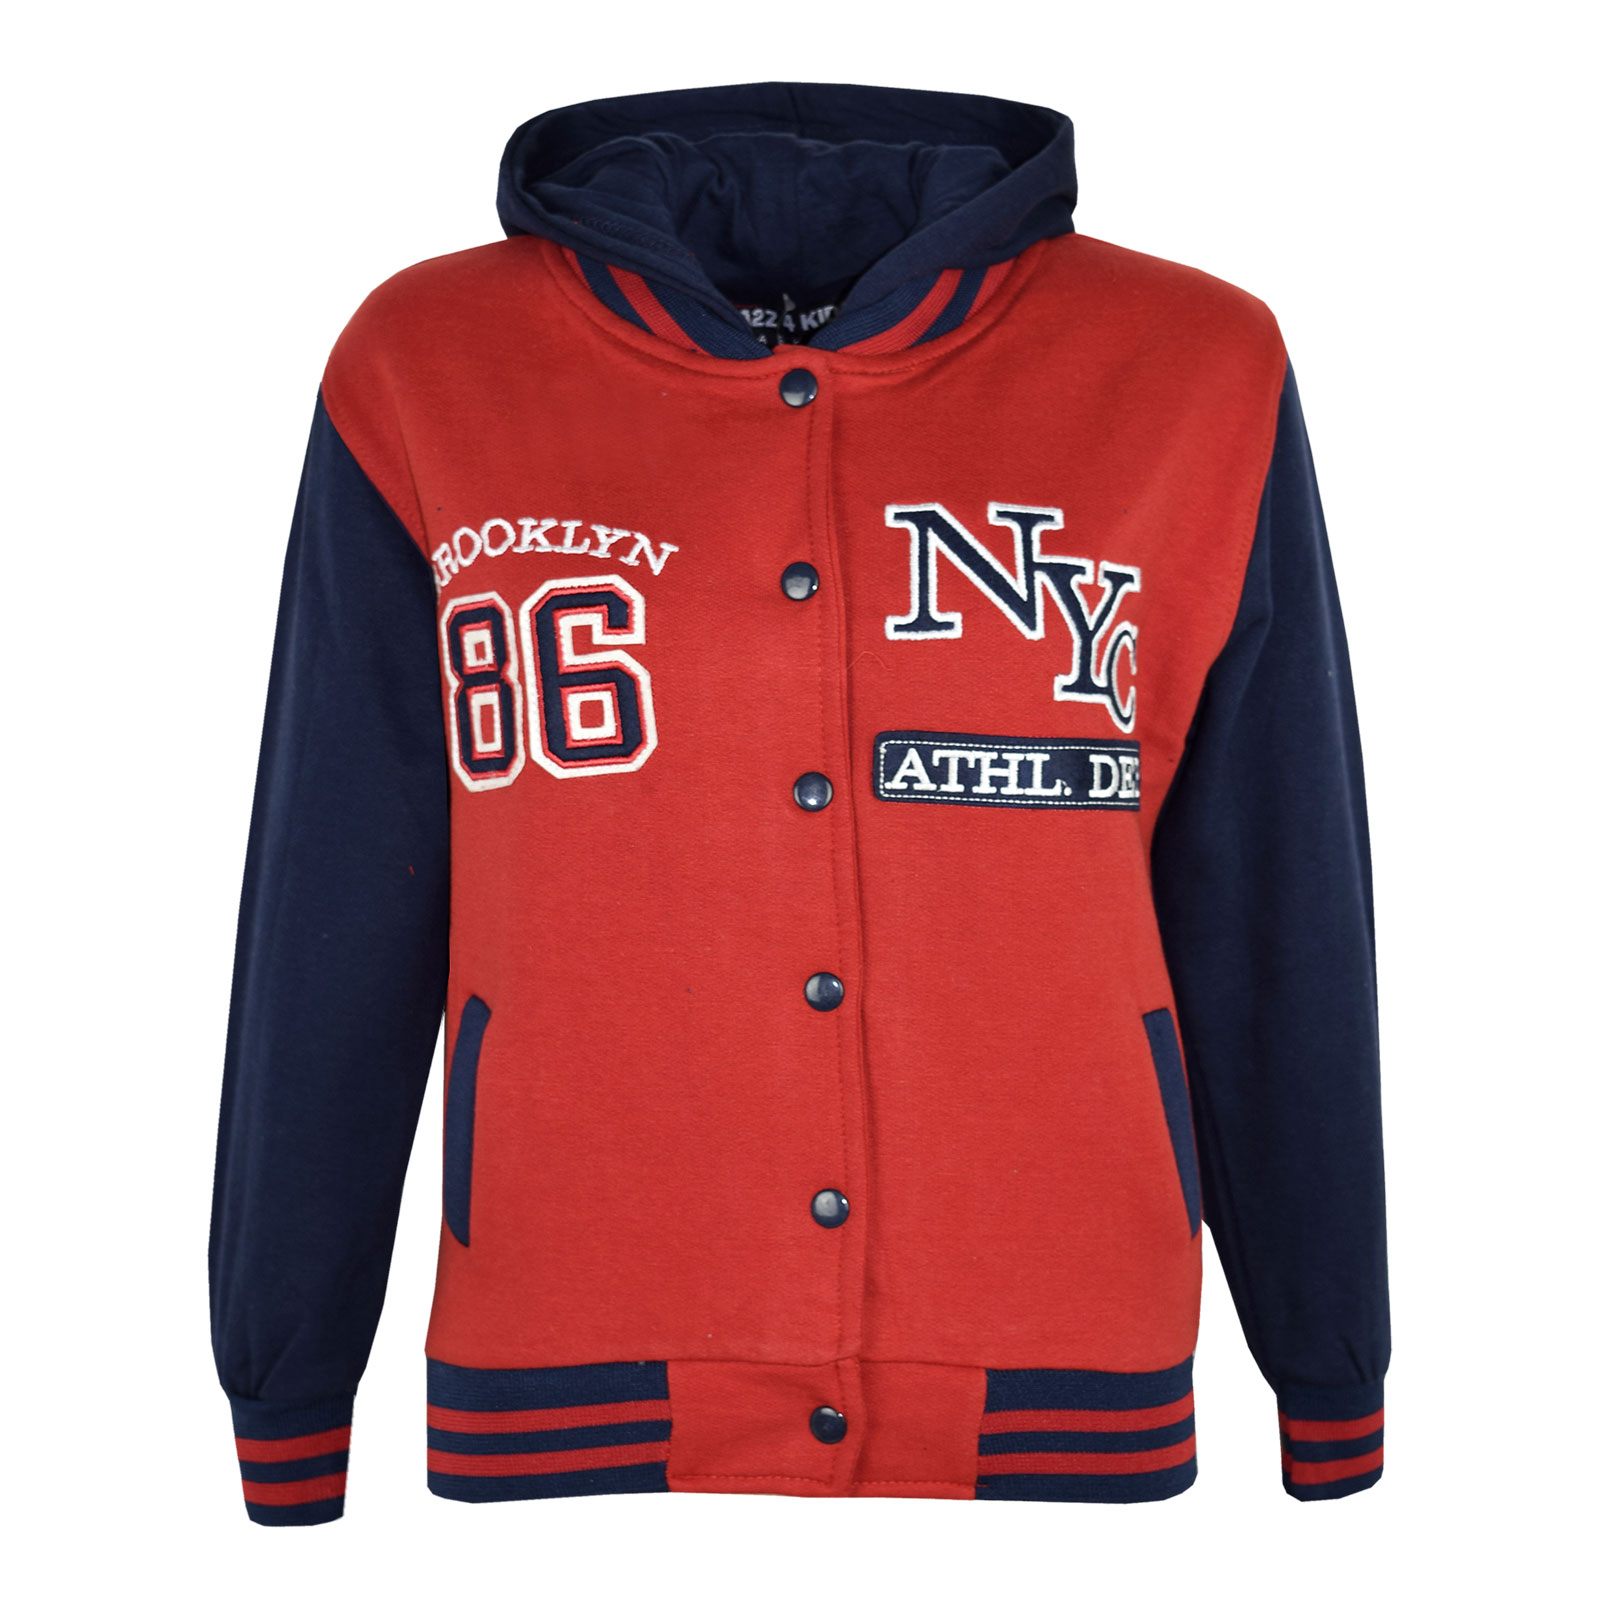 Free shipping BOTH ways on boys athletic jackets coats clothing 1, from our vast selection of styles. Fast delivery, and 24/7/ real-person service with a smile. Click or call